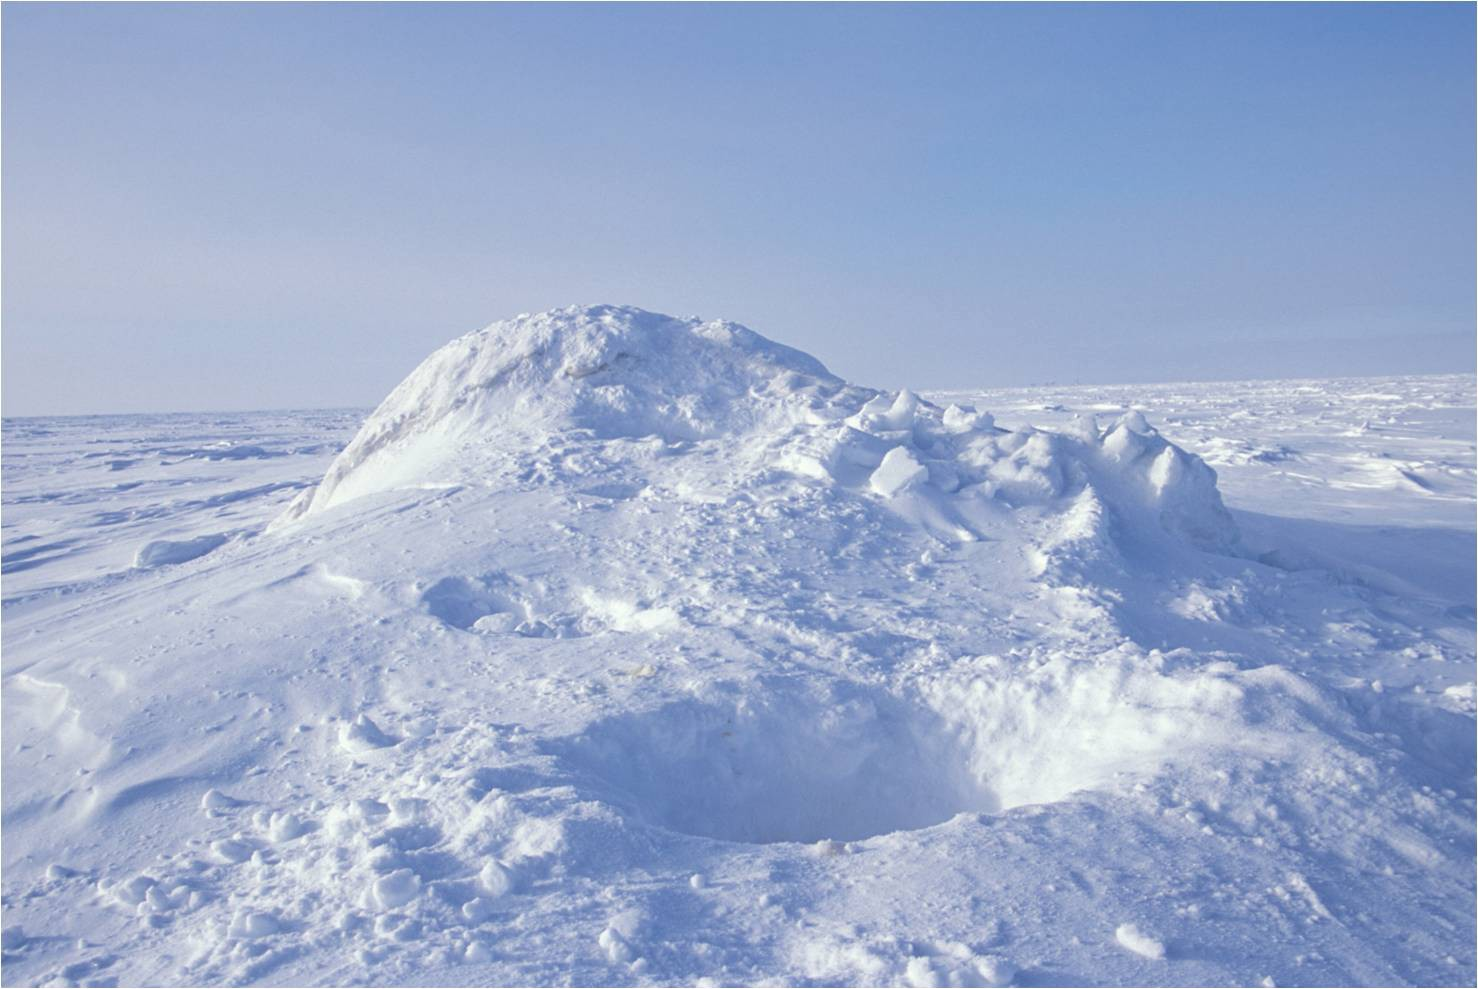 View from the surface of a dome of snow with recently excavated snow at the entrance of a den.